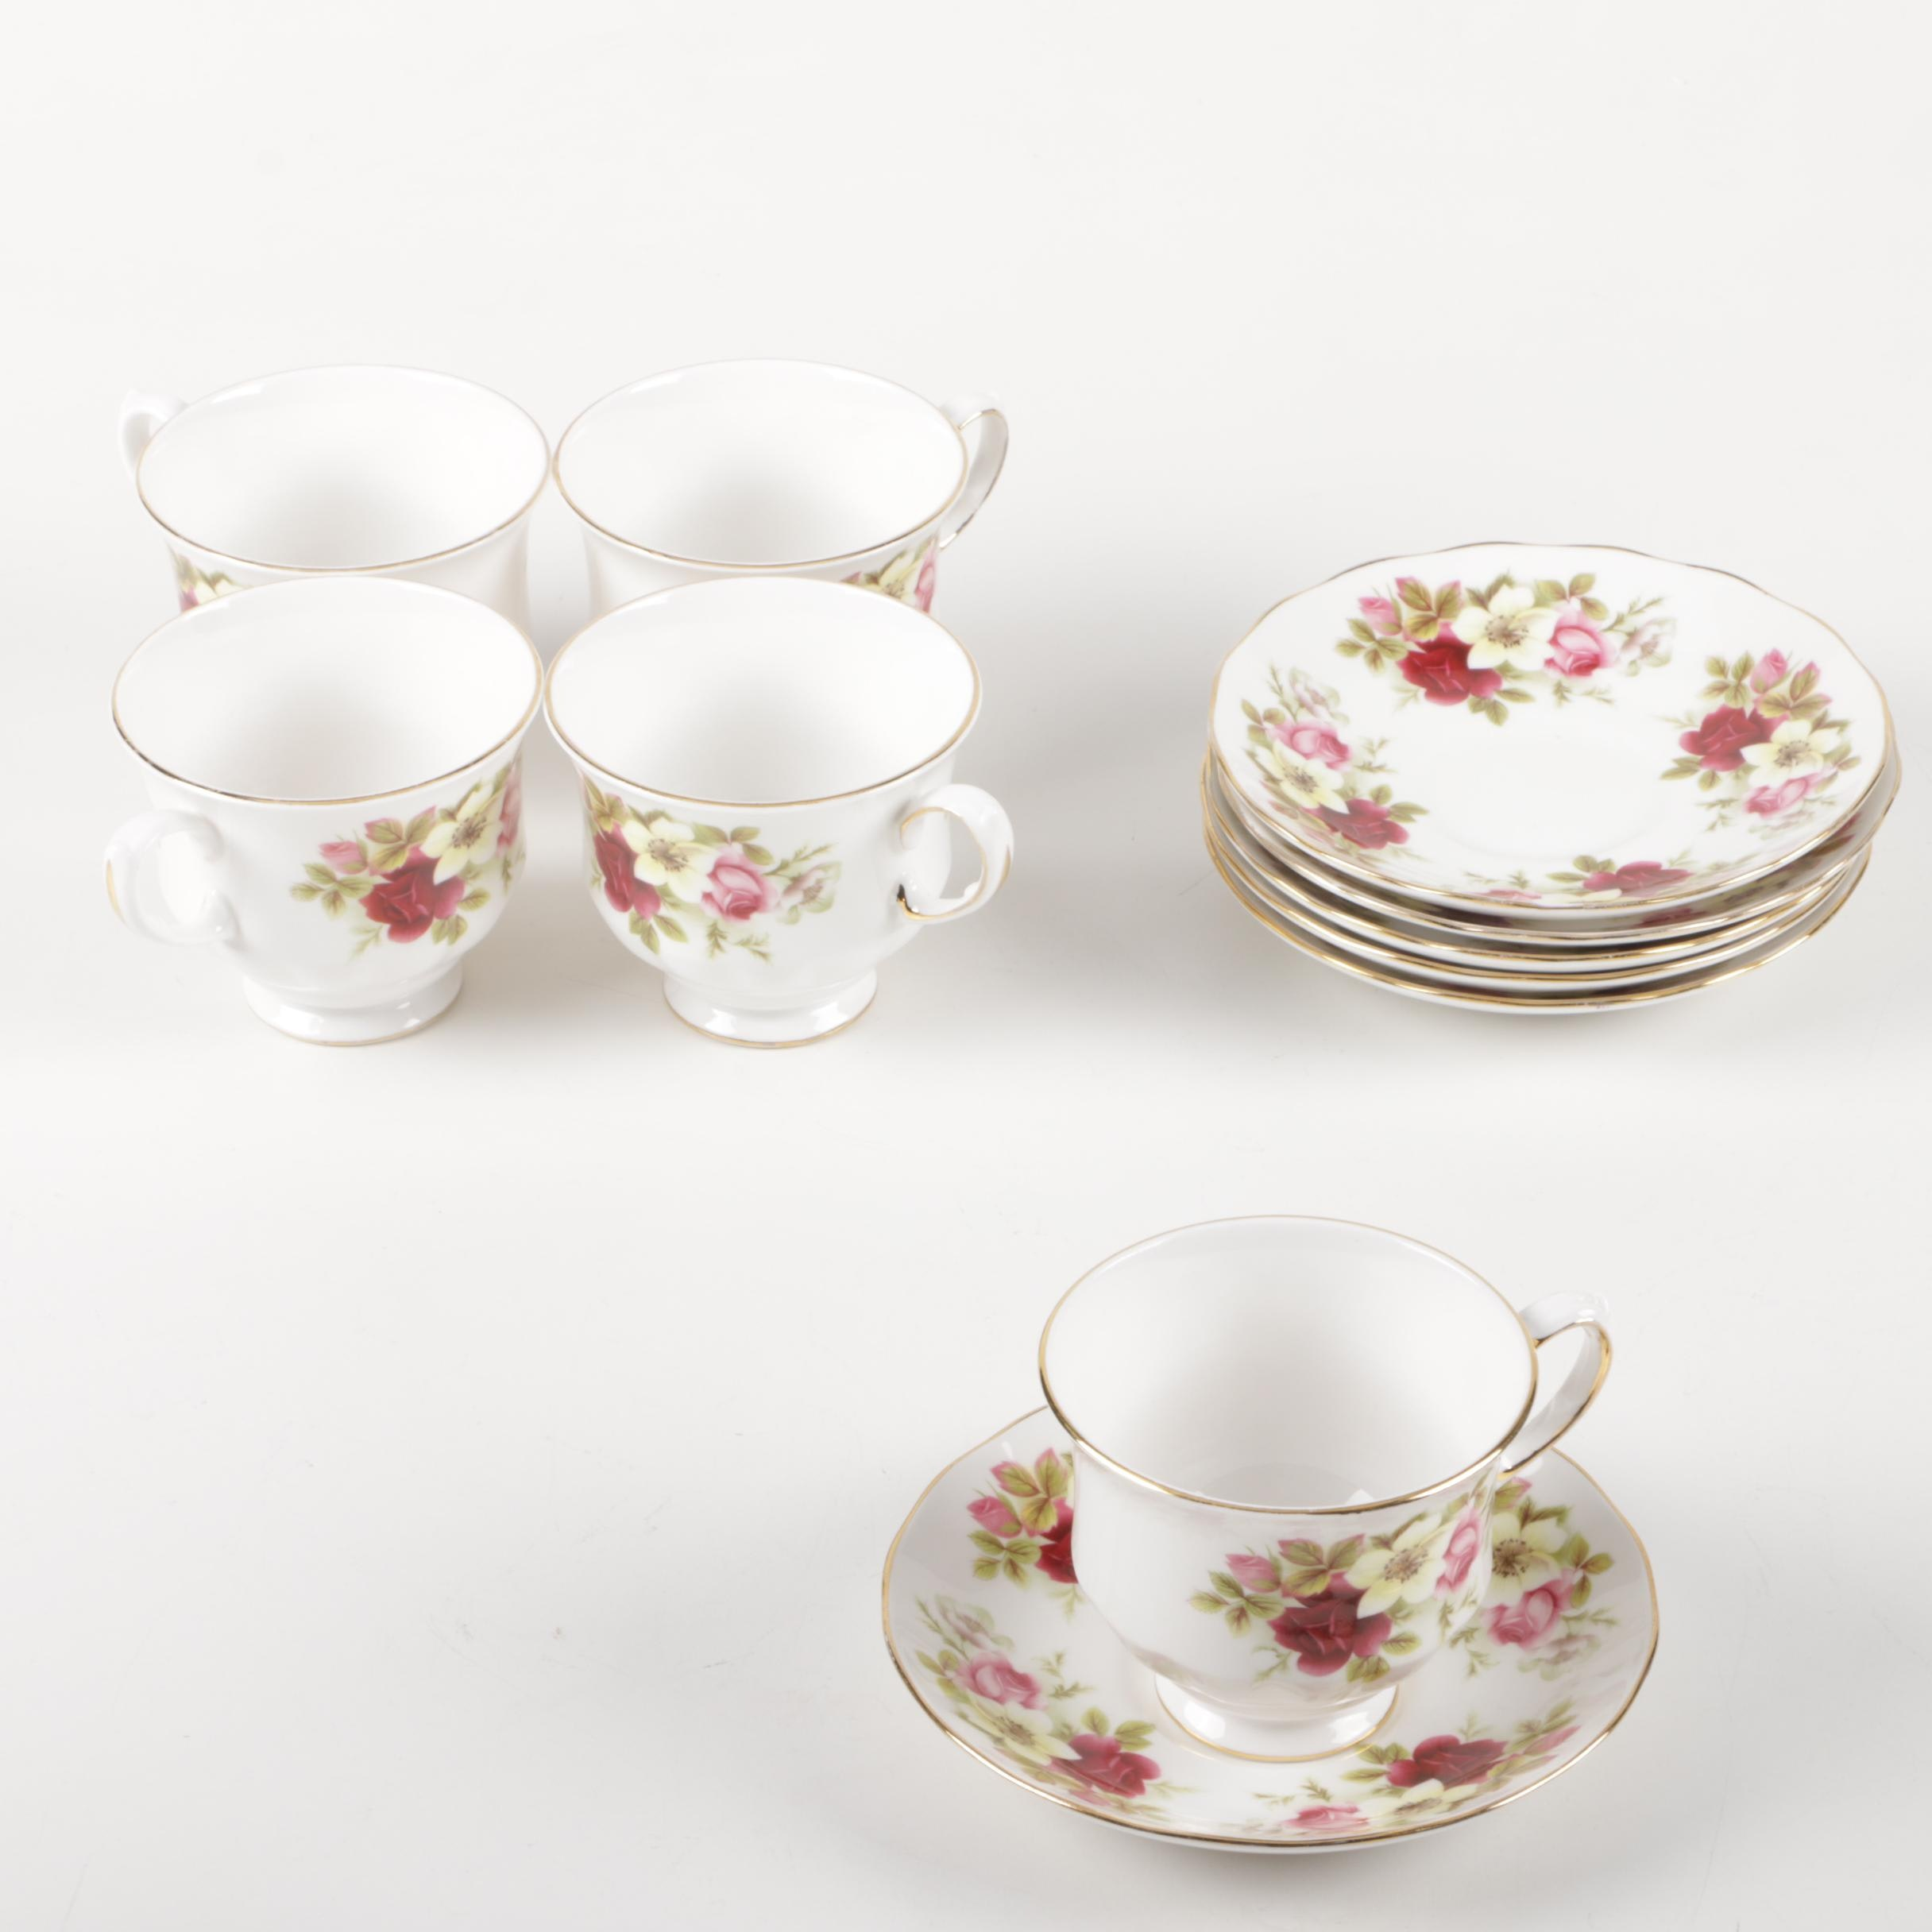 """Vintage Ridgway """"Queen Anne"""" Teacups and Saucers"""